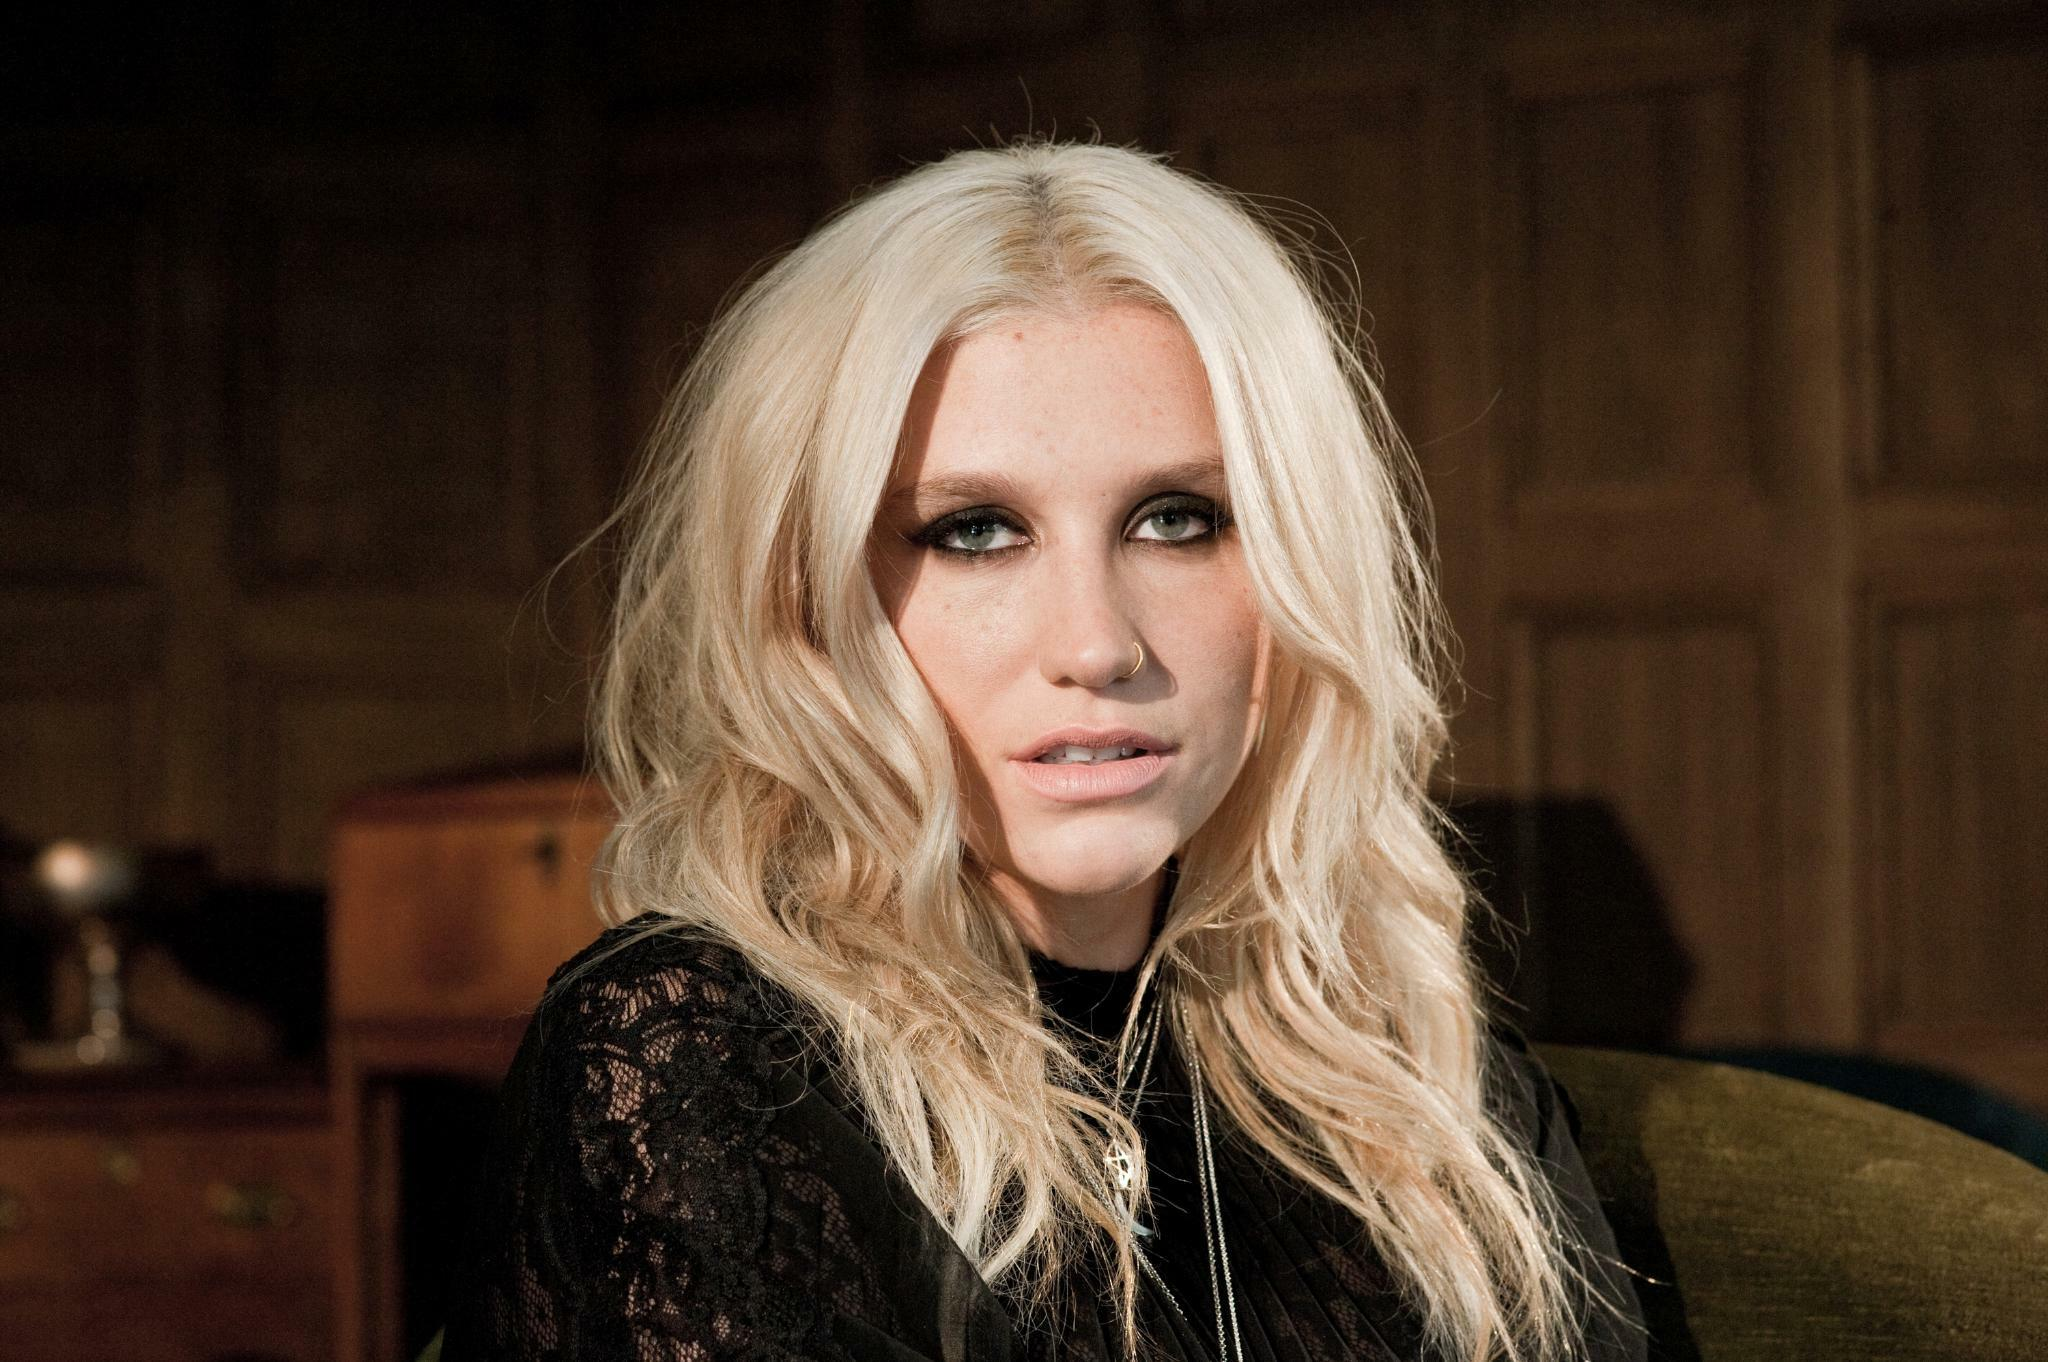 31 Kesha Hot Sexy Makeup Pictures Show Her Looks After